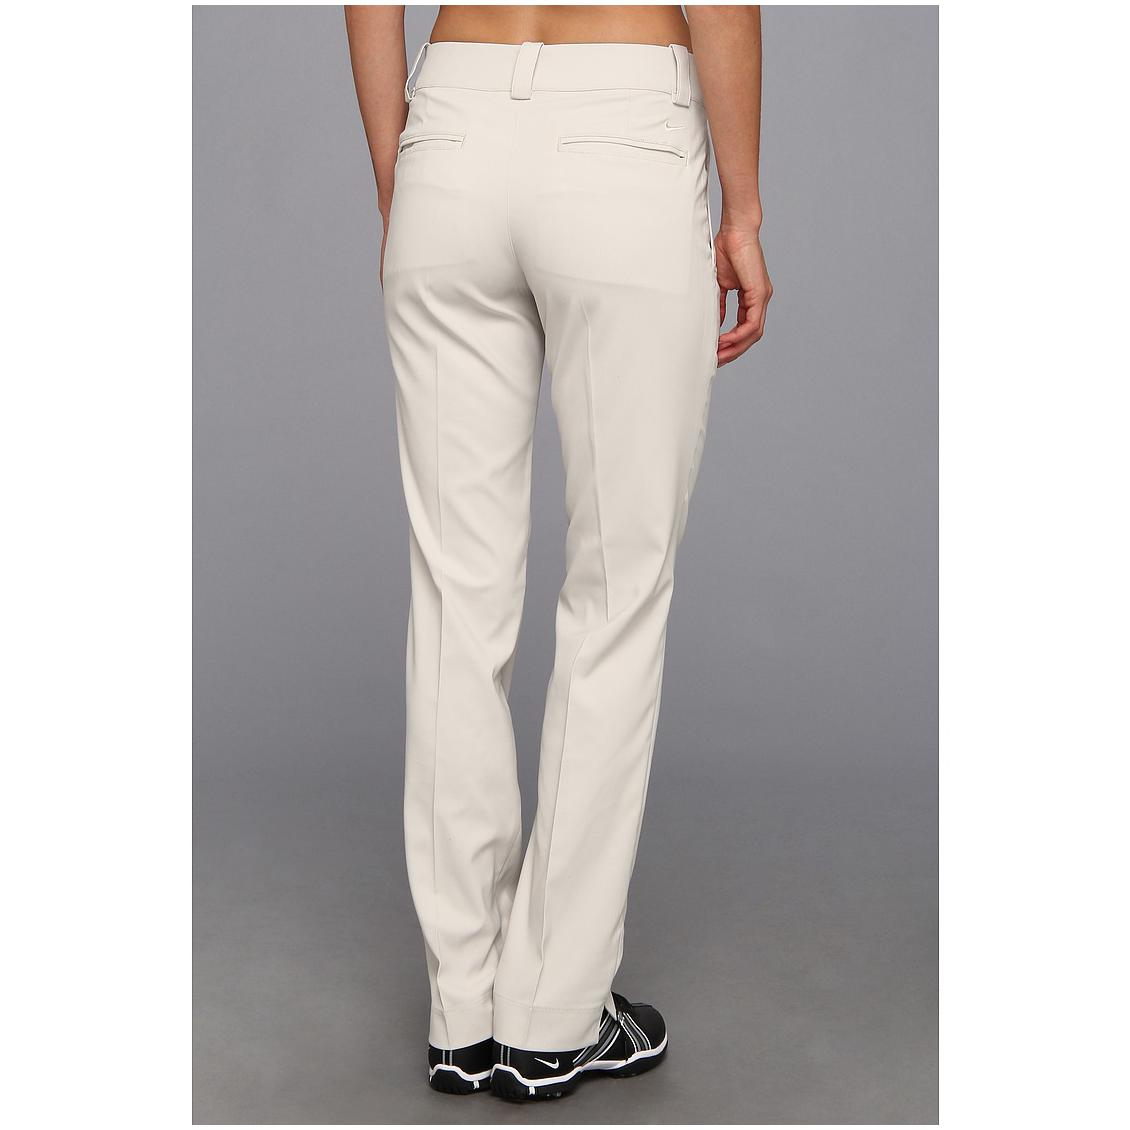 golf pants womens photo - 2